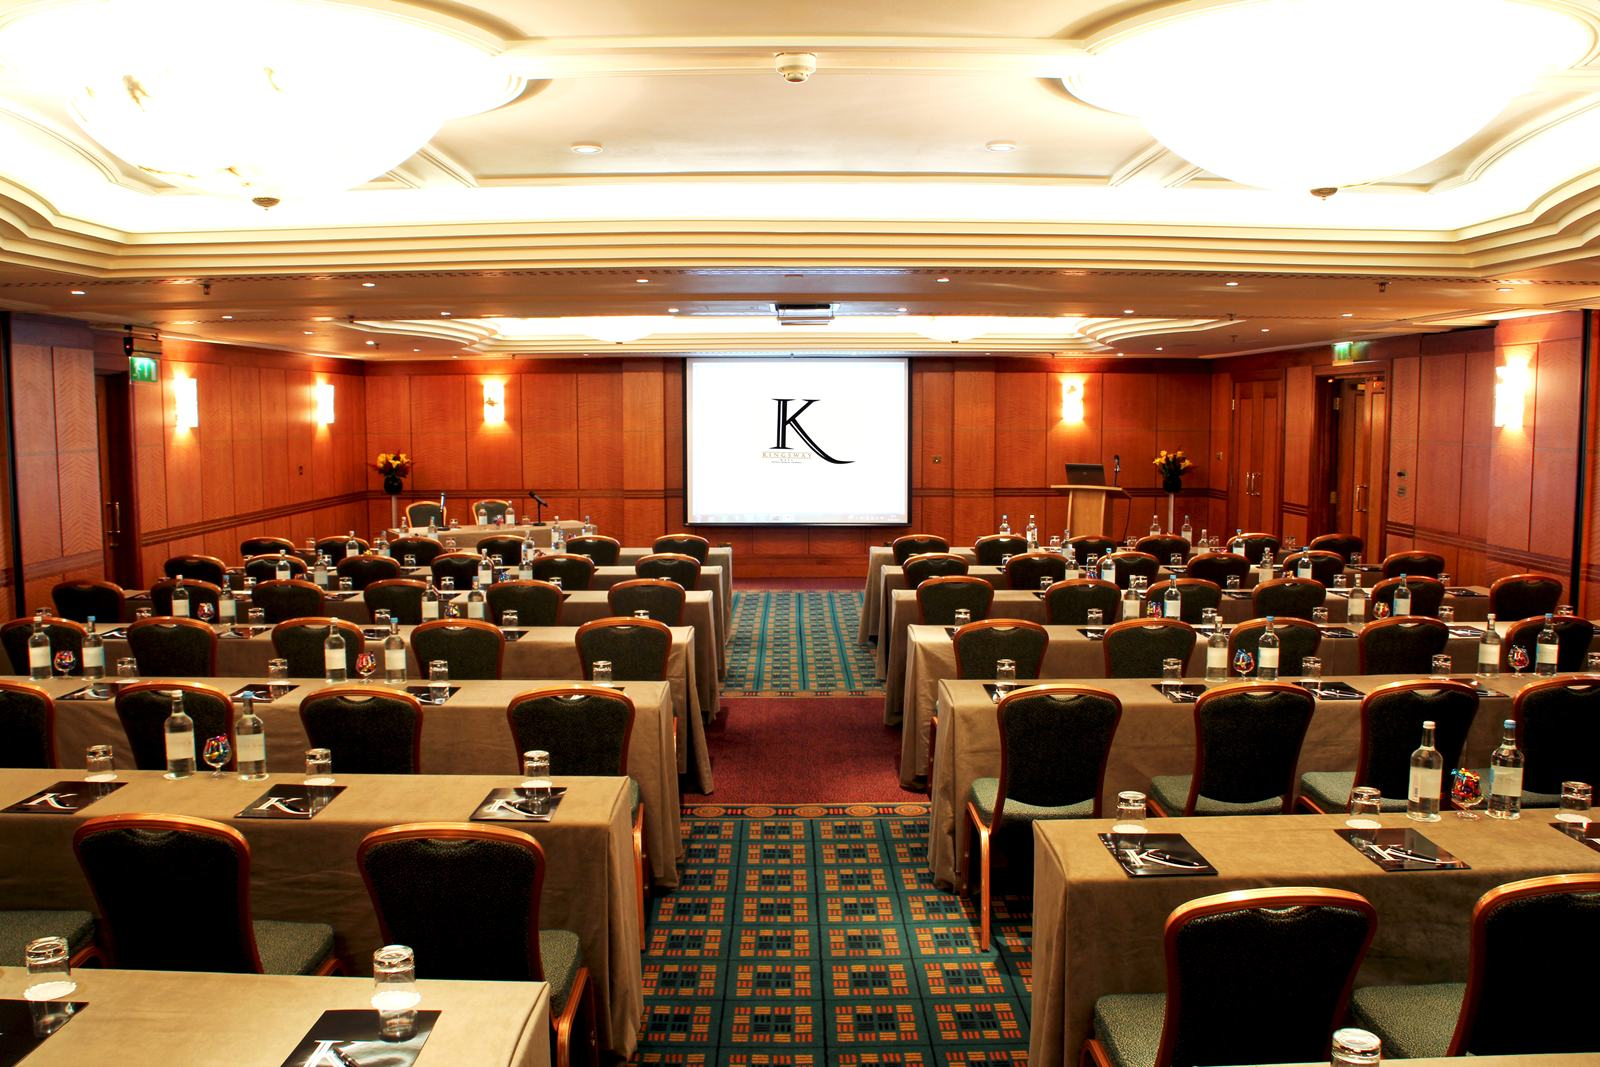 The Milton Room at Kingsway Hall is perfect for training courses and presentations.